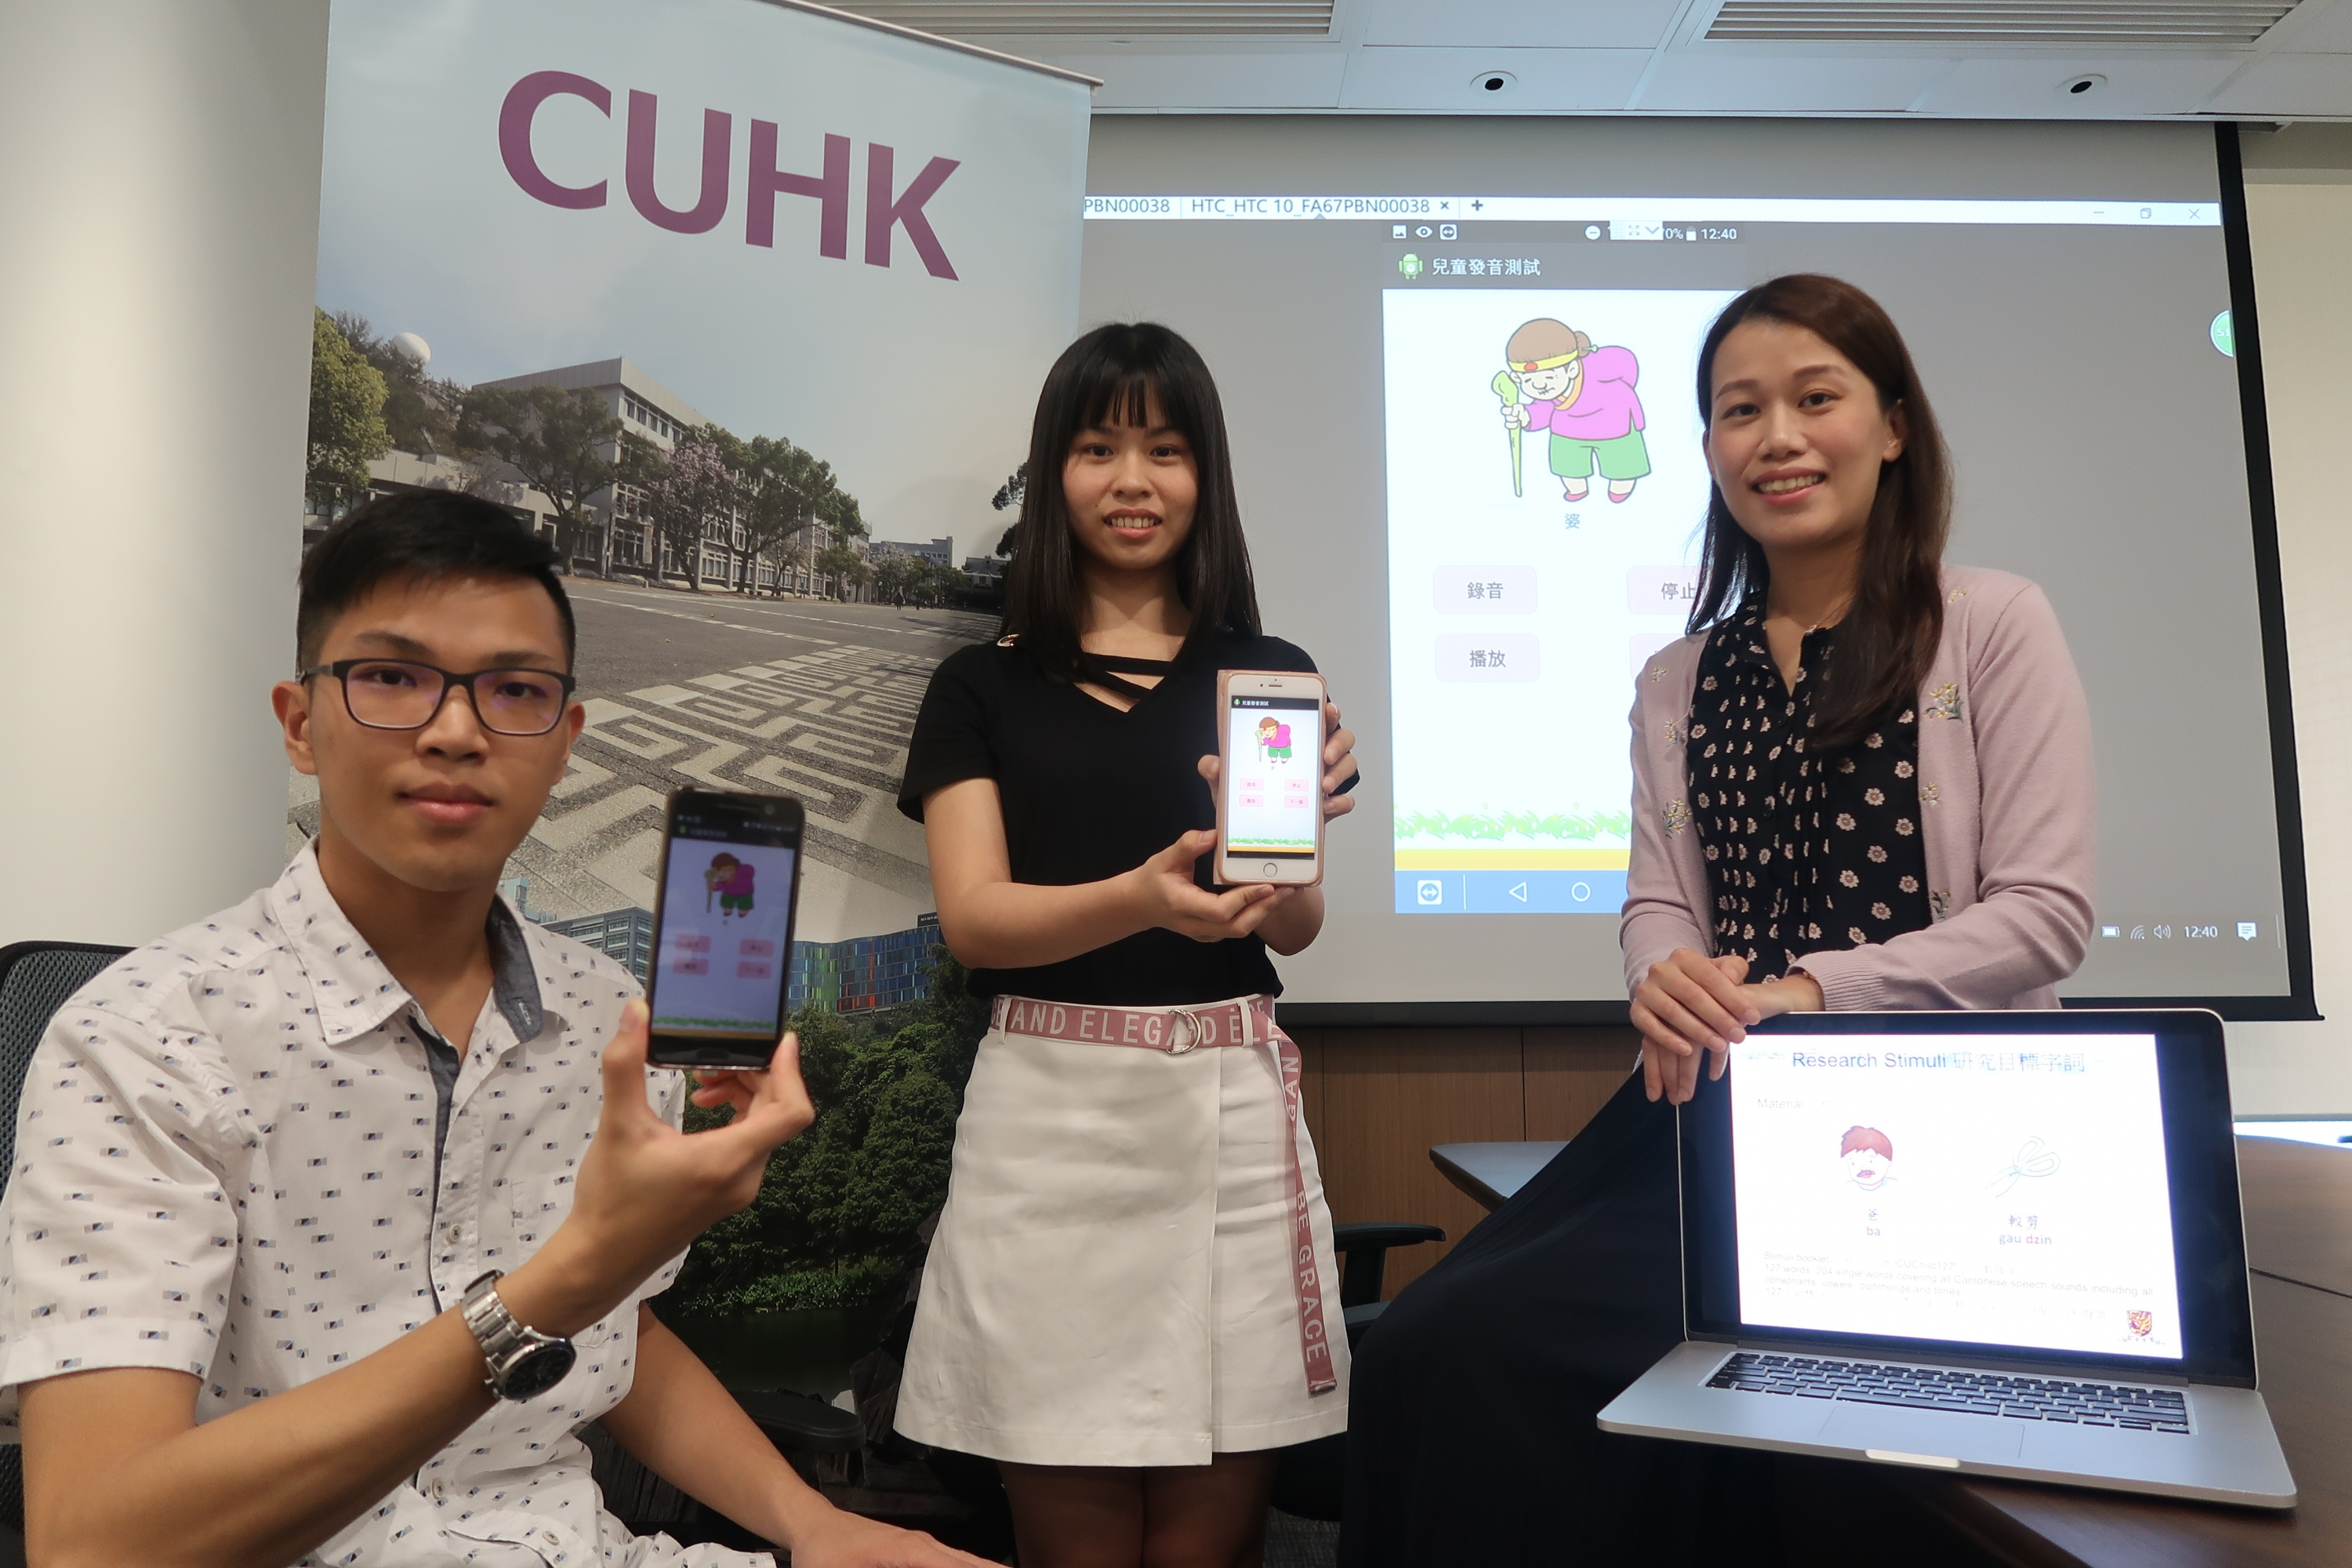 """CUHK Engineering team is now working on the Acoustic model of the """"An Efficient Assessment Tool for Child Speech Disorders"""". It will be tested by speech therapists as soon as next year. The mobile application shown is a prototype of the project. (From left) NG Si Ioi, undergraduate student from the Department of Electronic Engineering, JIANG Yi, postgraduate student from the Department of Electronic Engineering, and NG Wing Yee Cymie, PhD student from the Department of Otorhinolaryngology, Head and Neck Surgery."""